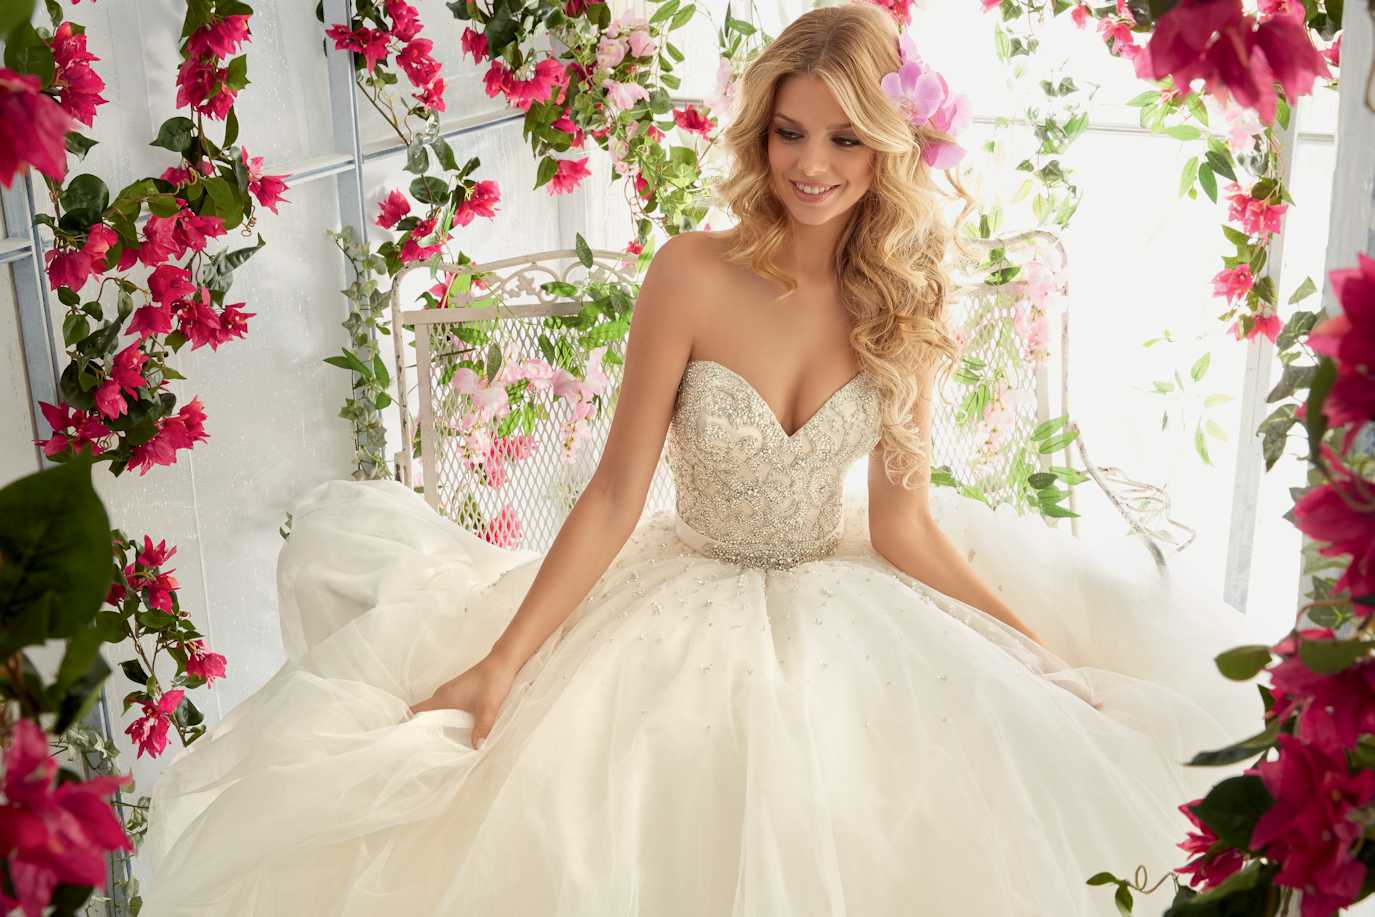 Wedding Dresses: Wedding Dresses & Gowns